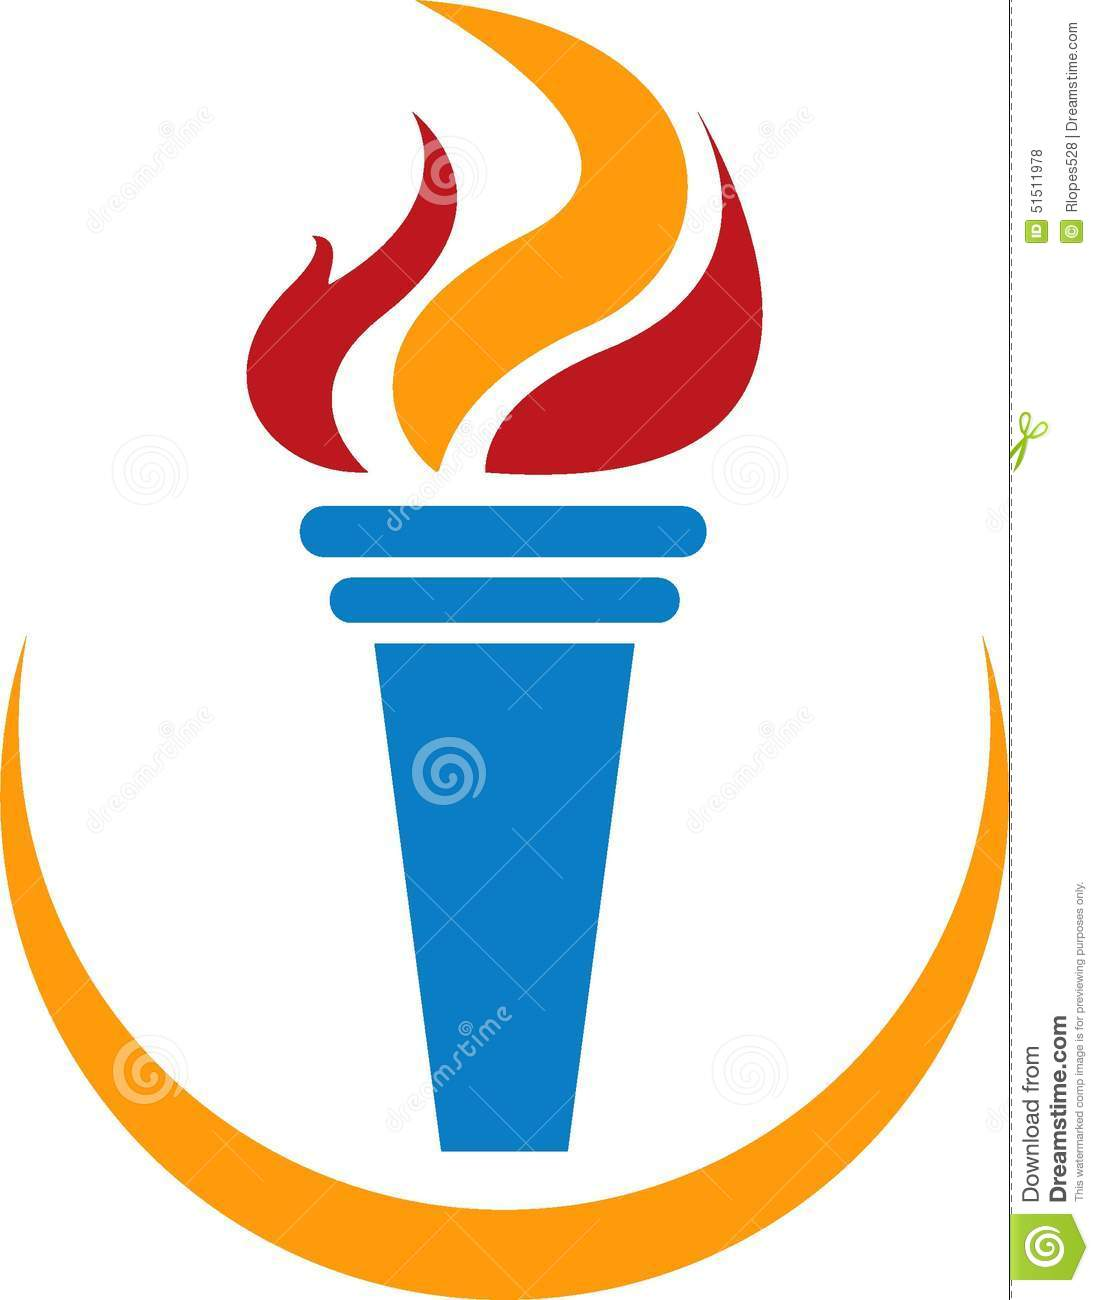 Olympic Torch stock vector. Illustration of game, fire - 51511978 for Olympic Torch Vector Free Download  83fiz